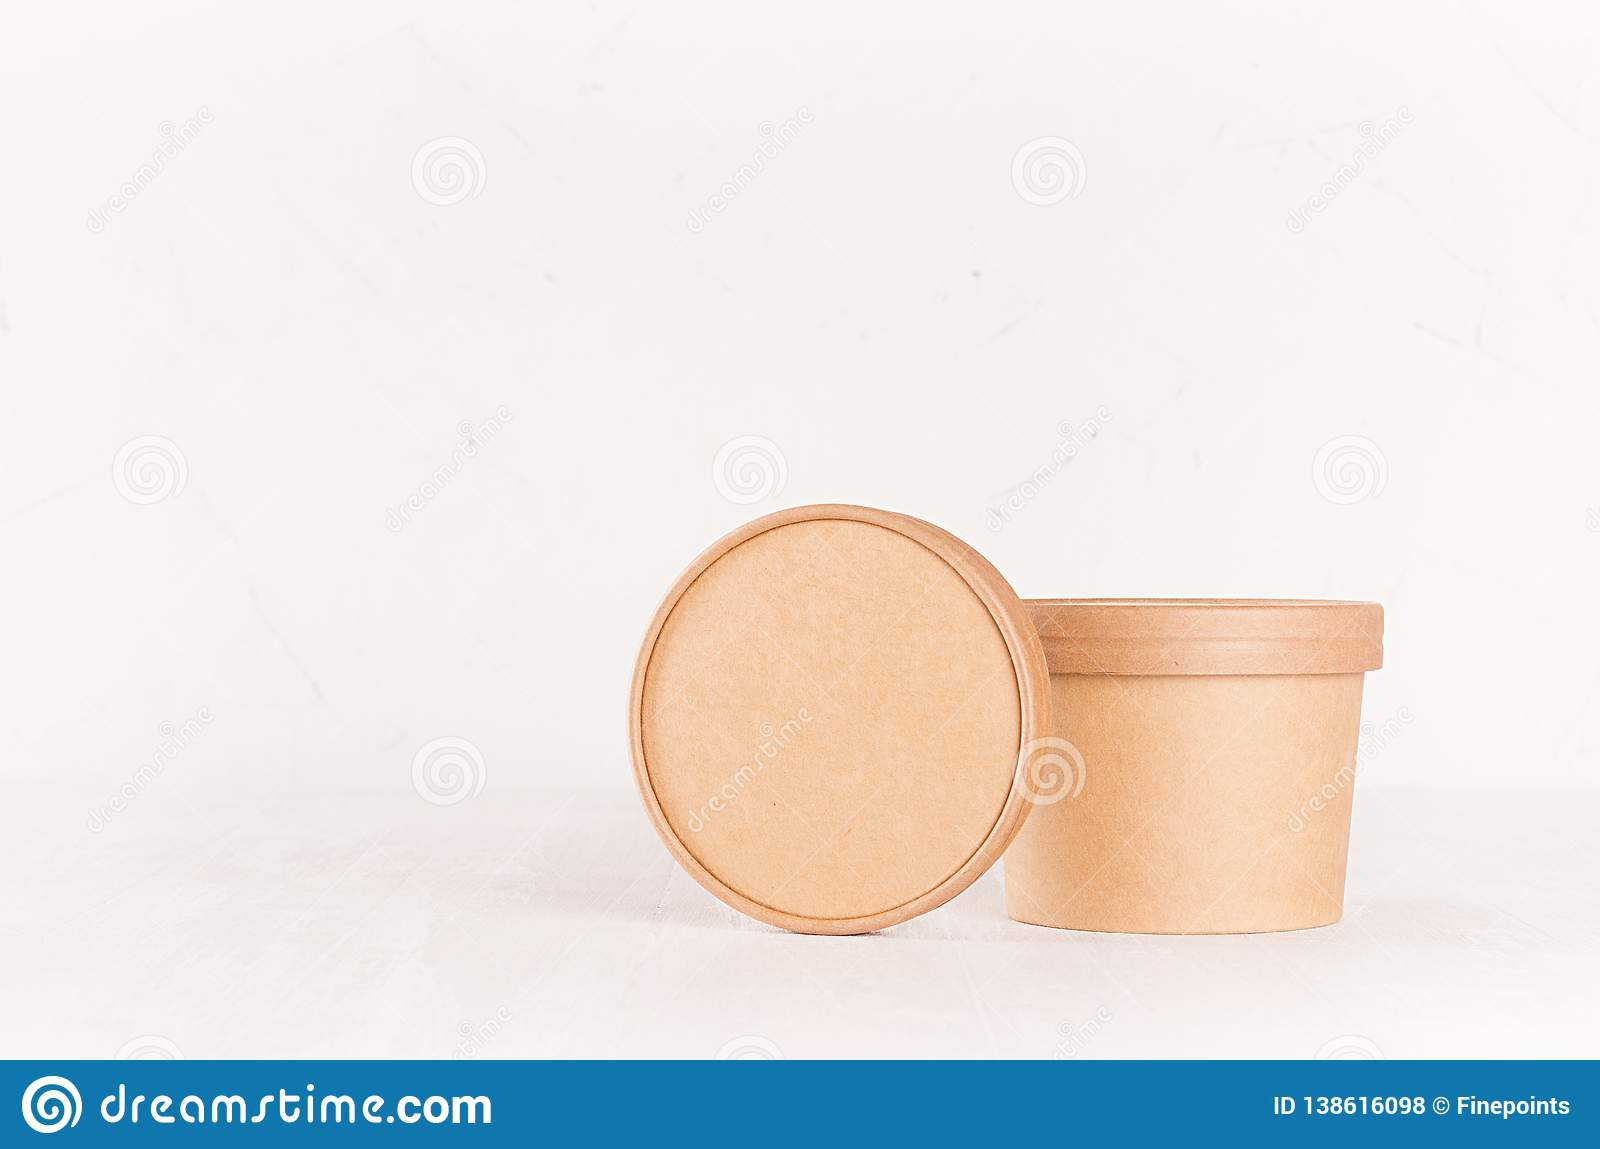 A fully layered psd file (change the print design and background color), measuring 4500 x 3150 px. Blank Brown Paper Bowl And Cap For Food Takeaway On Solf Light White Background Mockup For Brand Design Advertising Stock Photo Image Of Corporate Pack 138616098